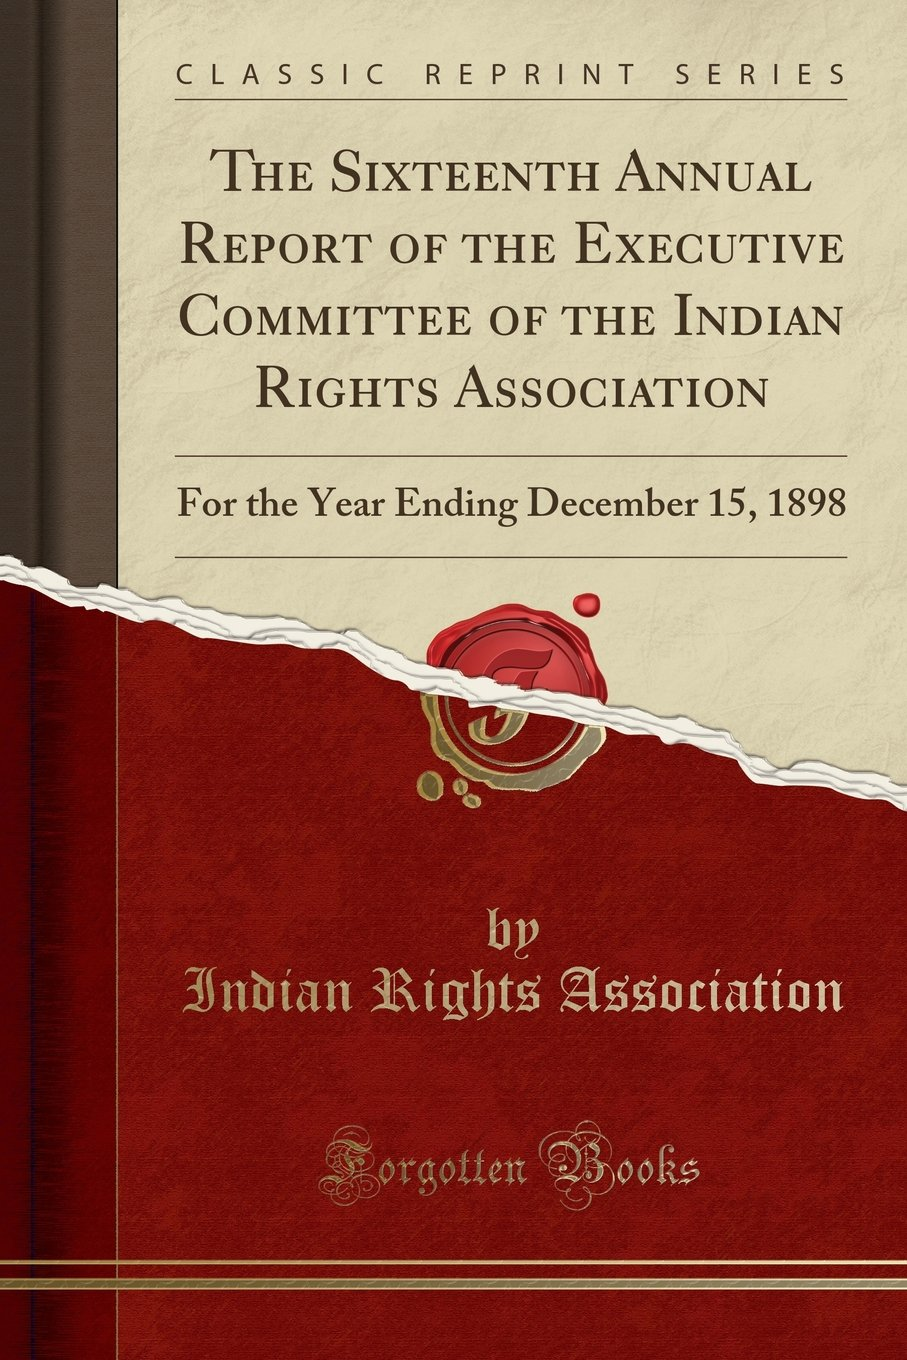 The Sixteenth Annual Report of the Executive Committee of the Indian Rights Association: For the Year Ending December 15, 1898 (Classic Reprint) PDF